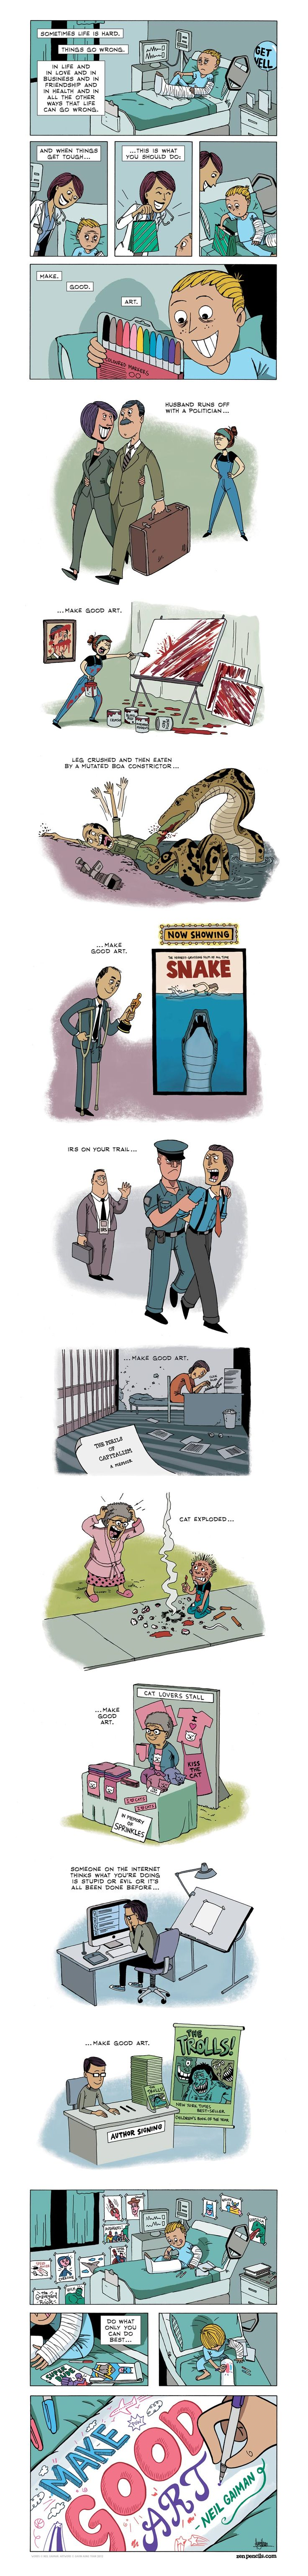 Fantastically Illustrated Inspirational Quotes from hands of ZenPencils